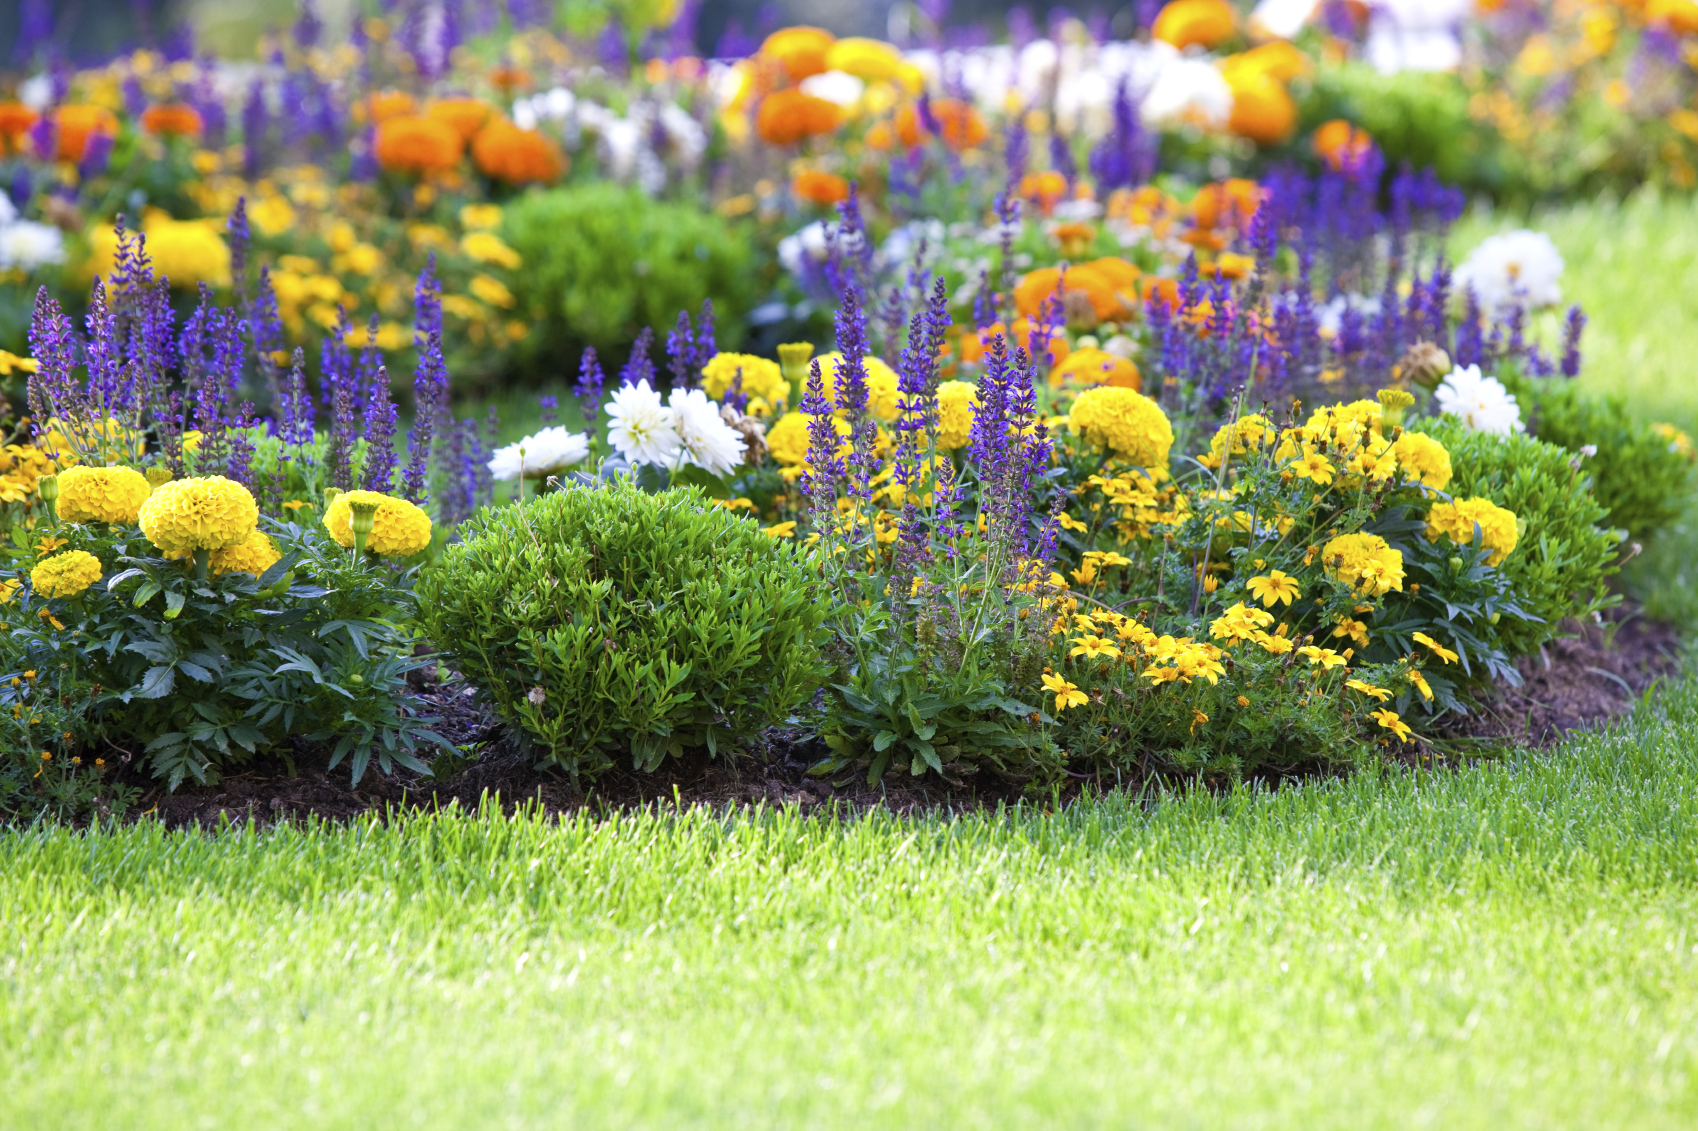 Flower gardening how to start a flower garden for Garden flower bed ideas